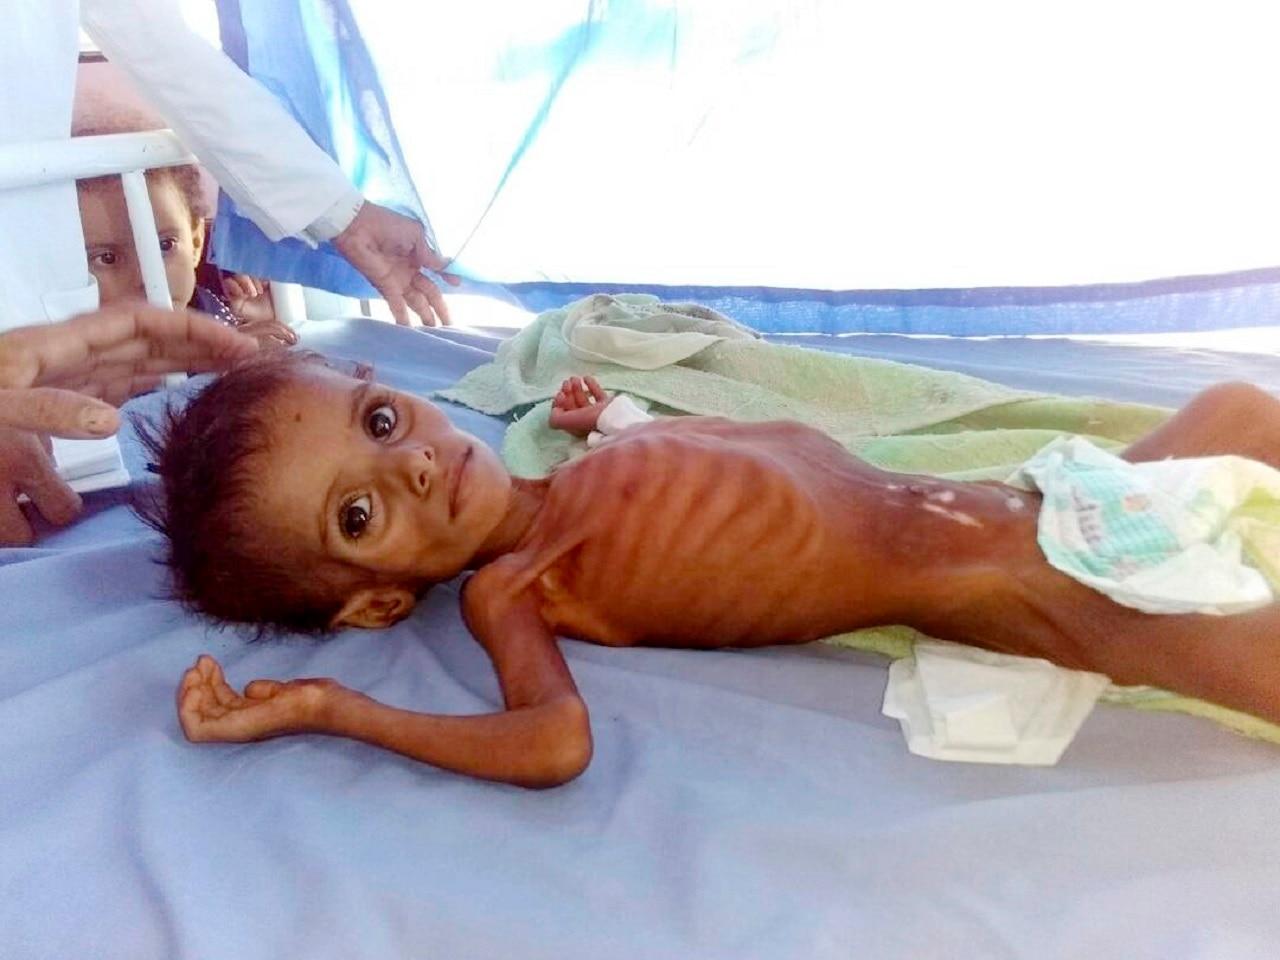 A severely malnourished child at the Aslam Health Center in Hajjah, Yemen.